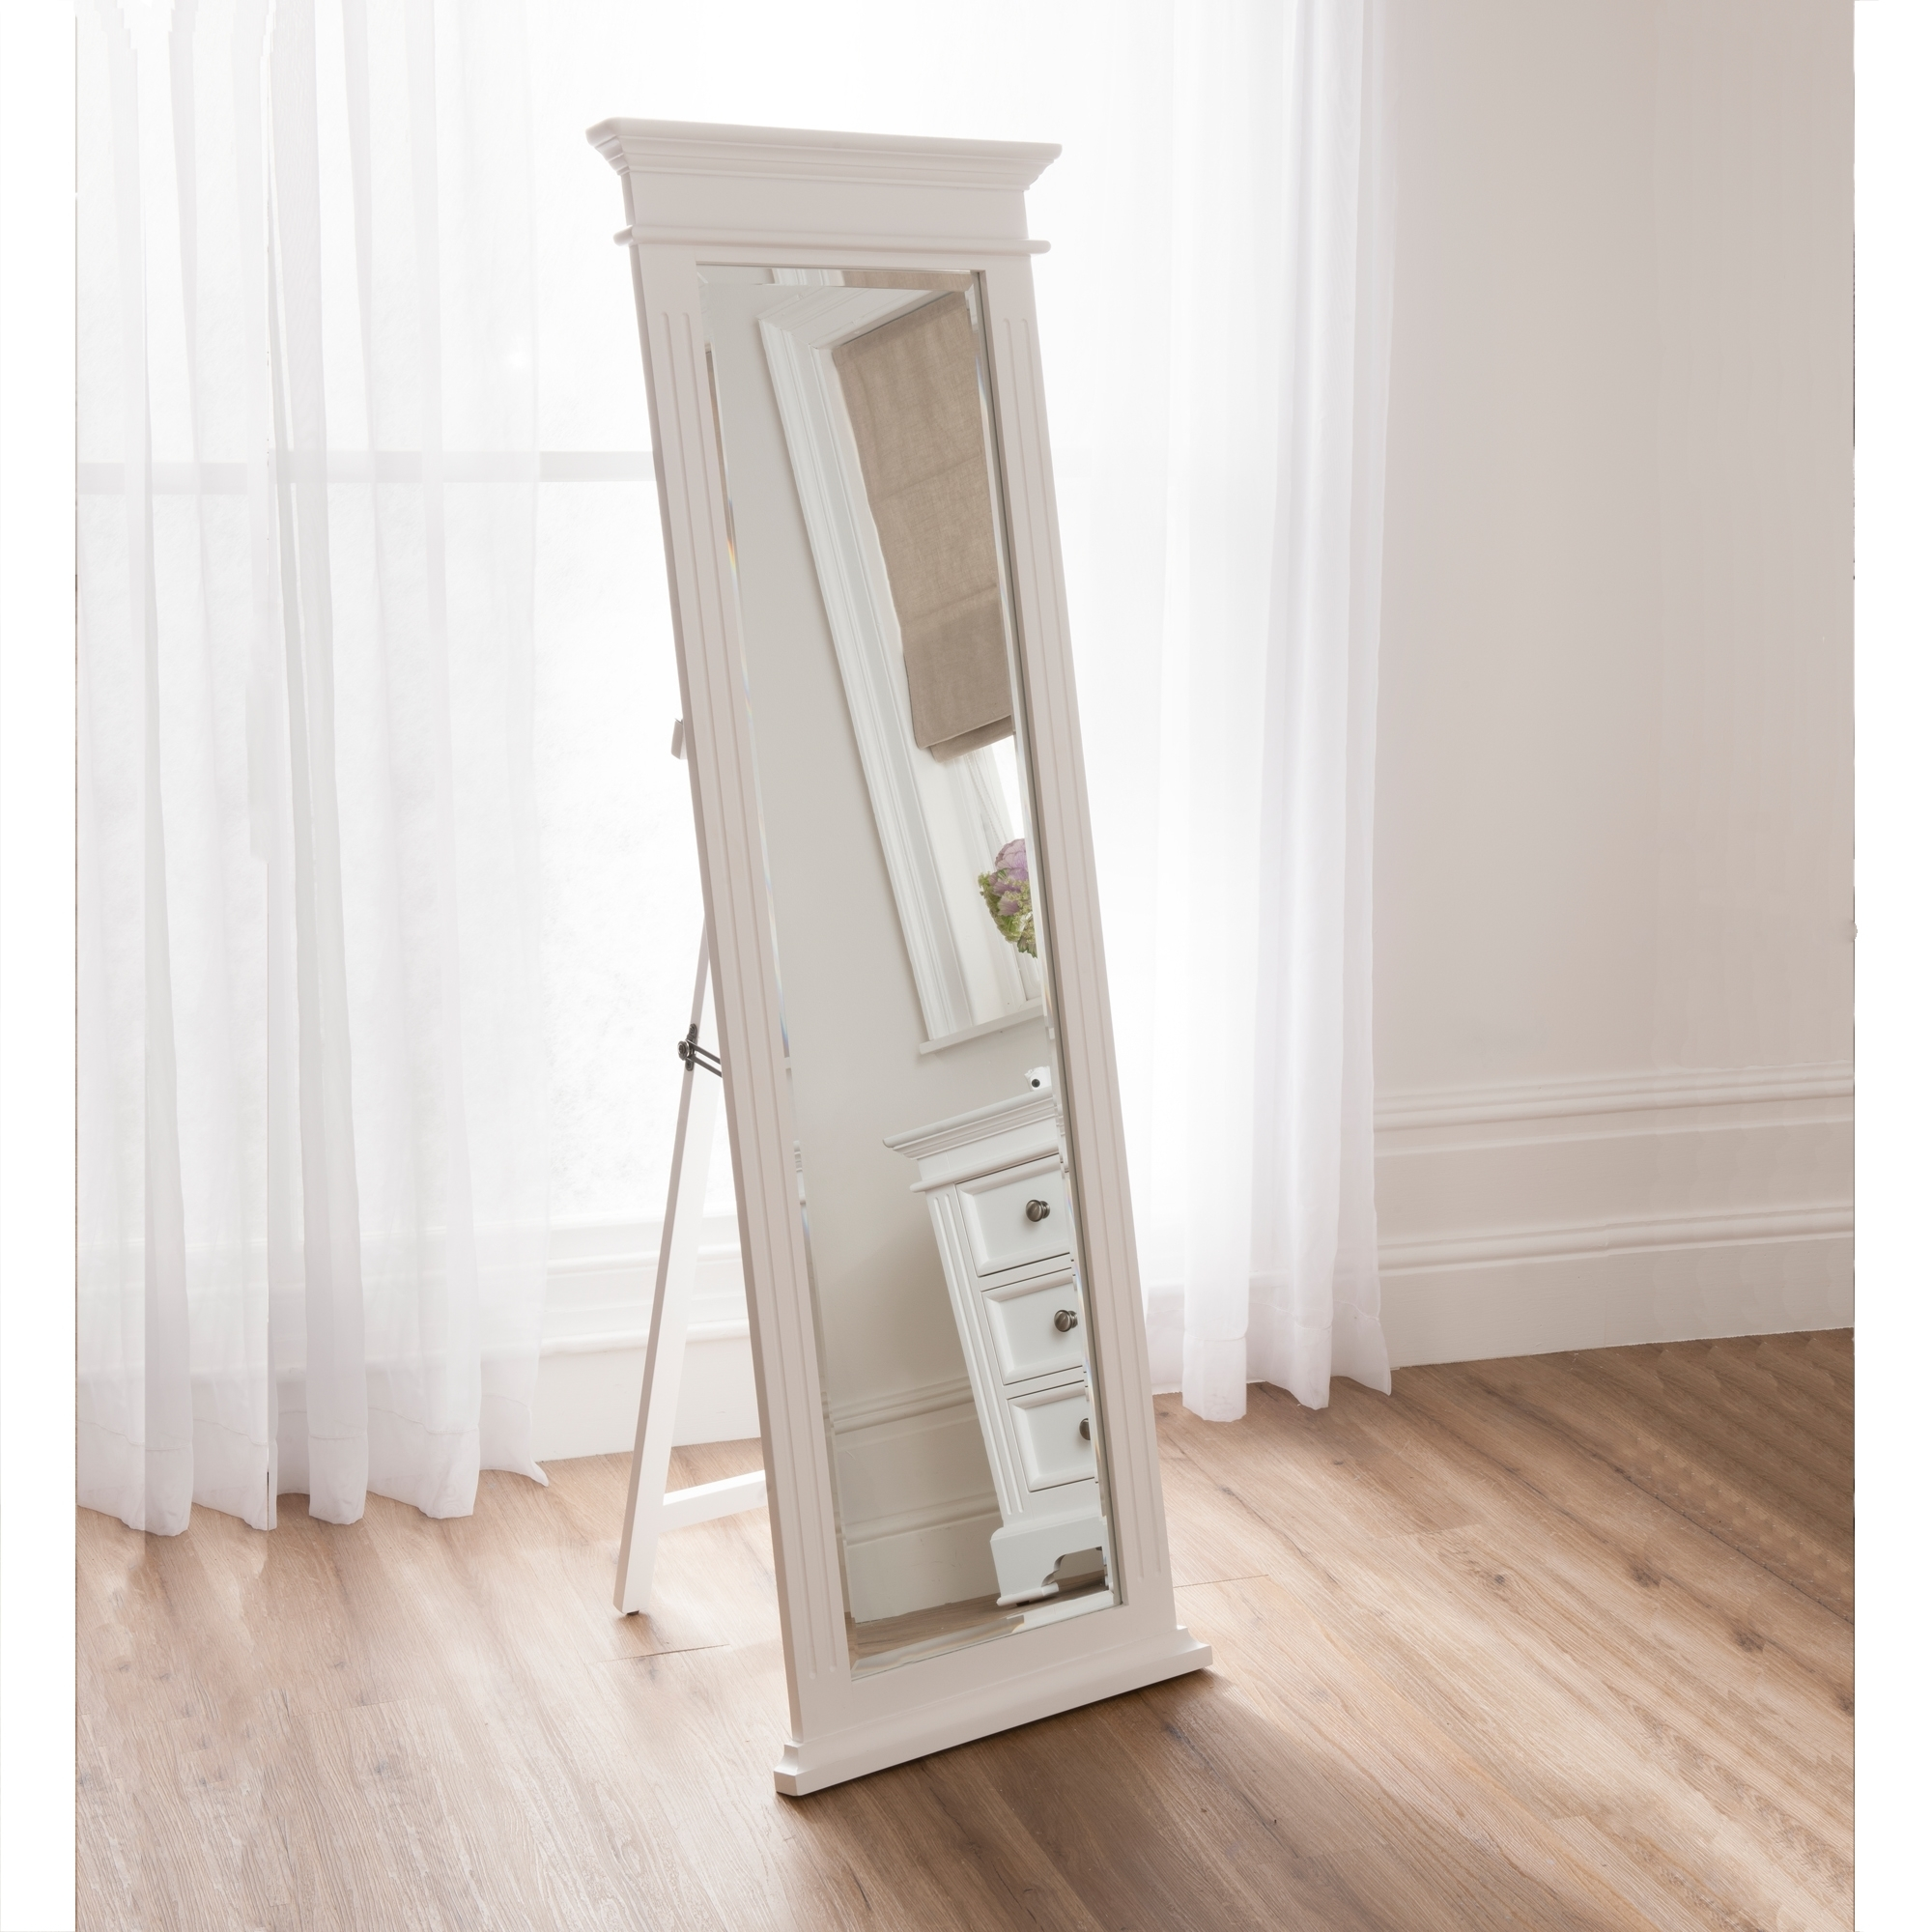 Cheval Mirrors French Style Mirrors Shab Chic With Shabby Chic Free Standing Mirror (View 7 of 15)